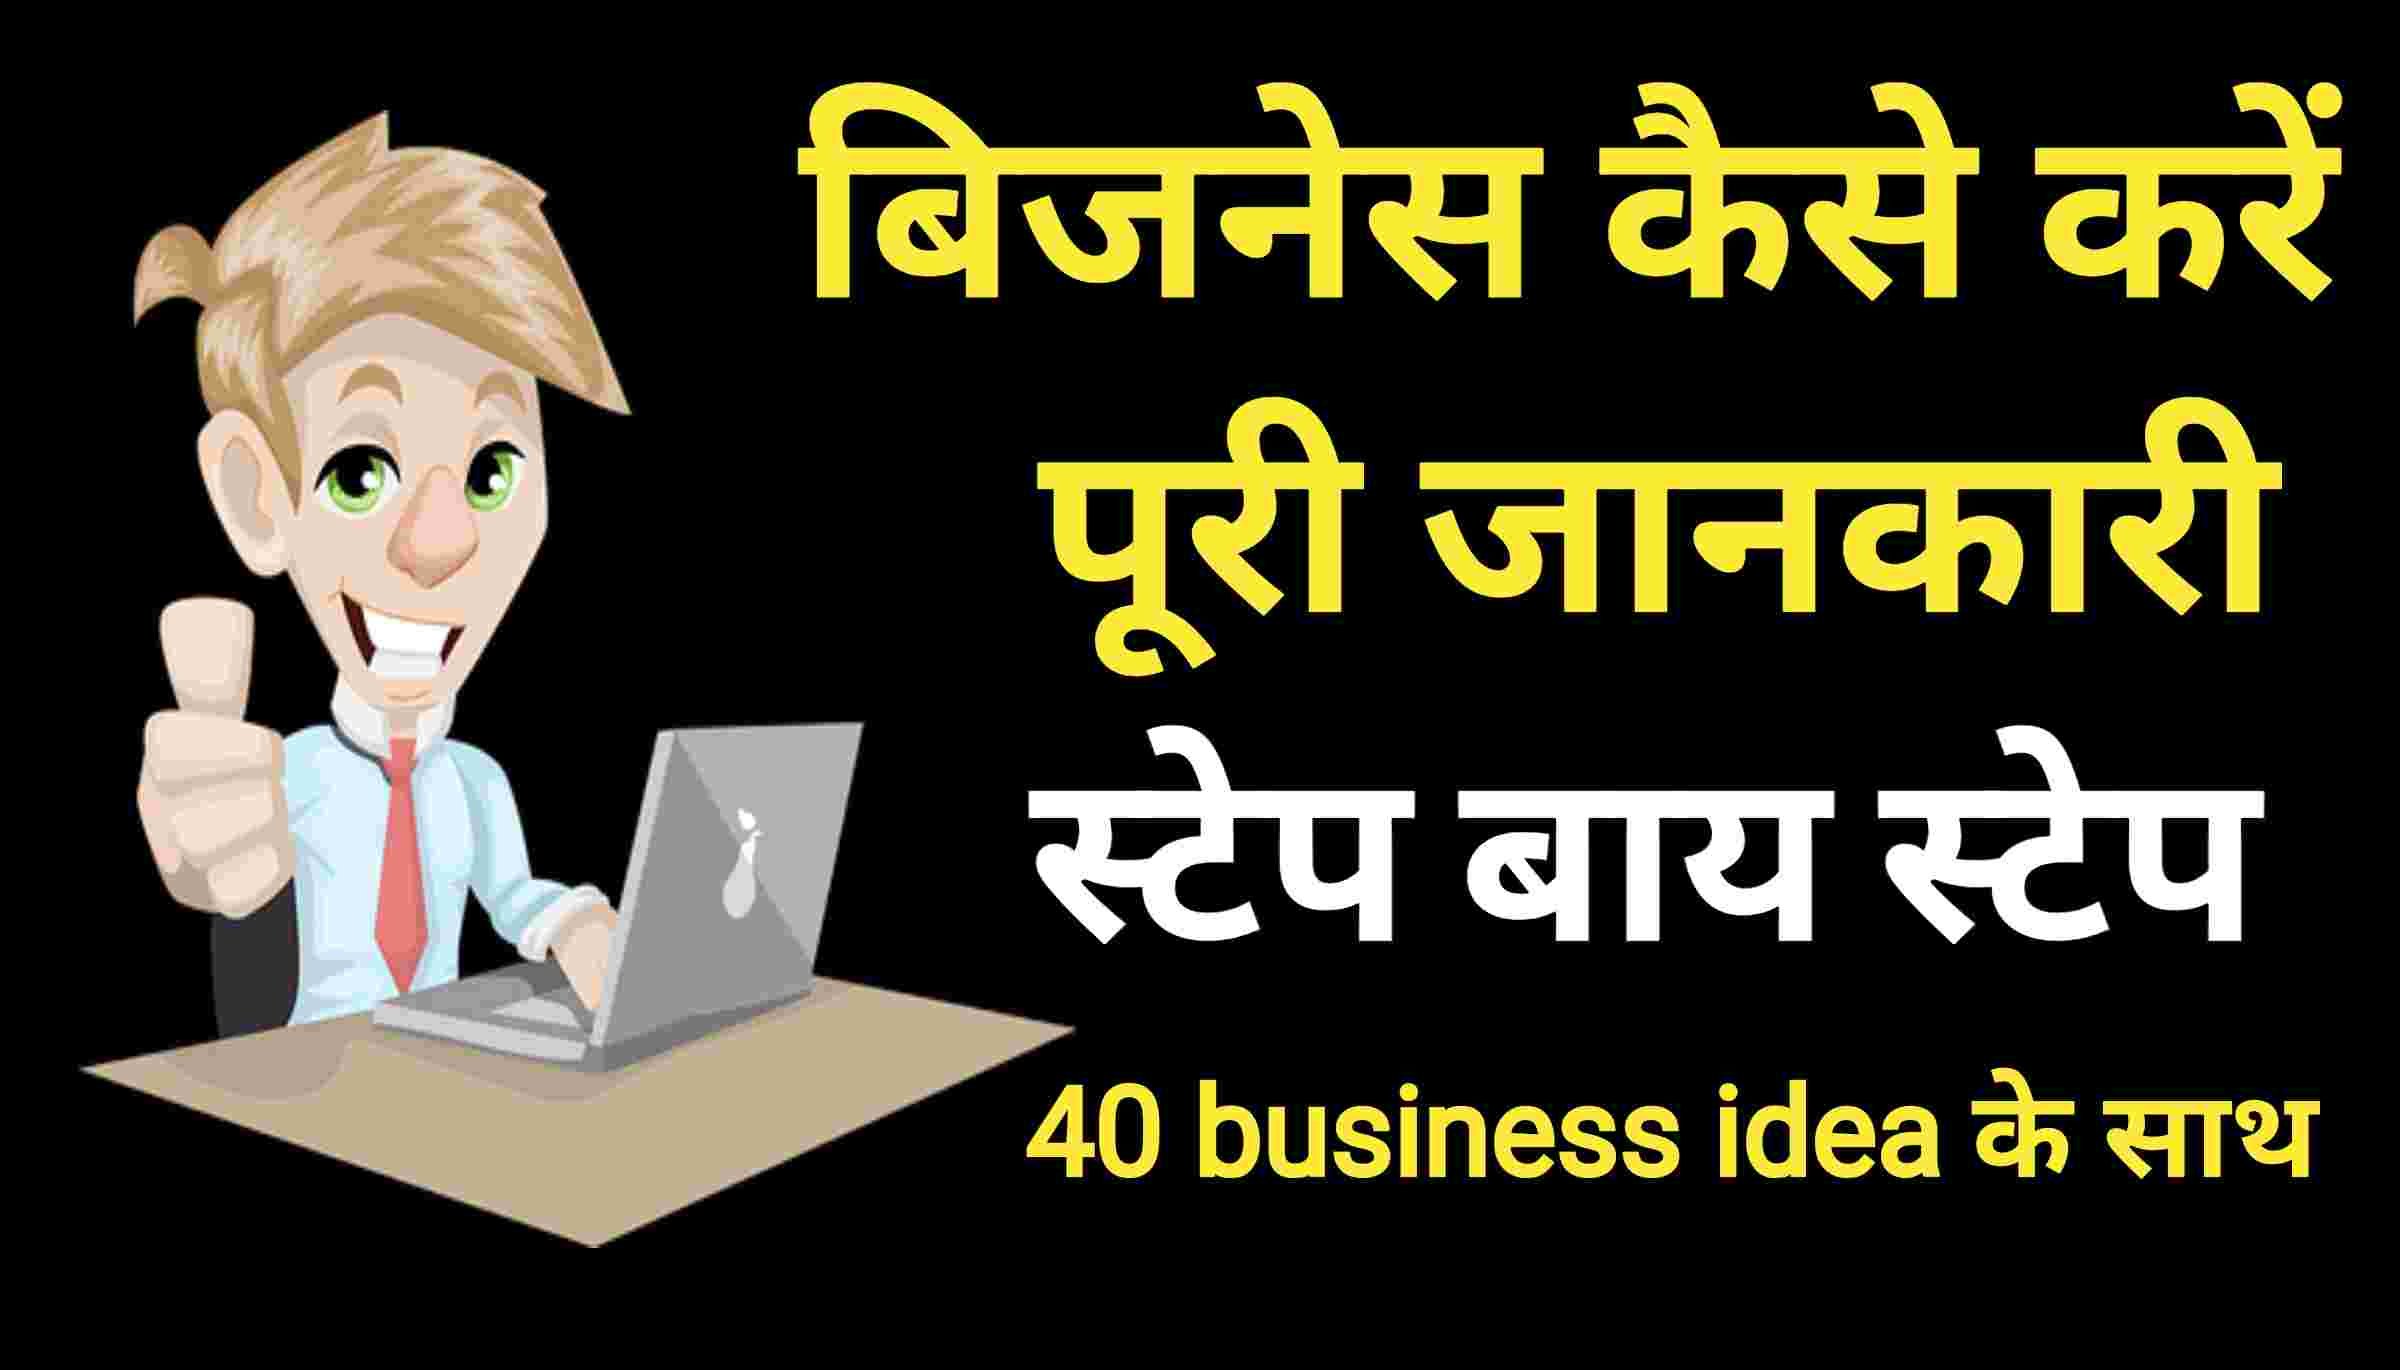 You are currently viewing बिज़नेस कैसे शुरू करें | Top 40 Business ideas 2021